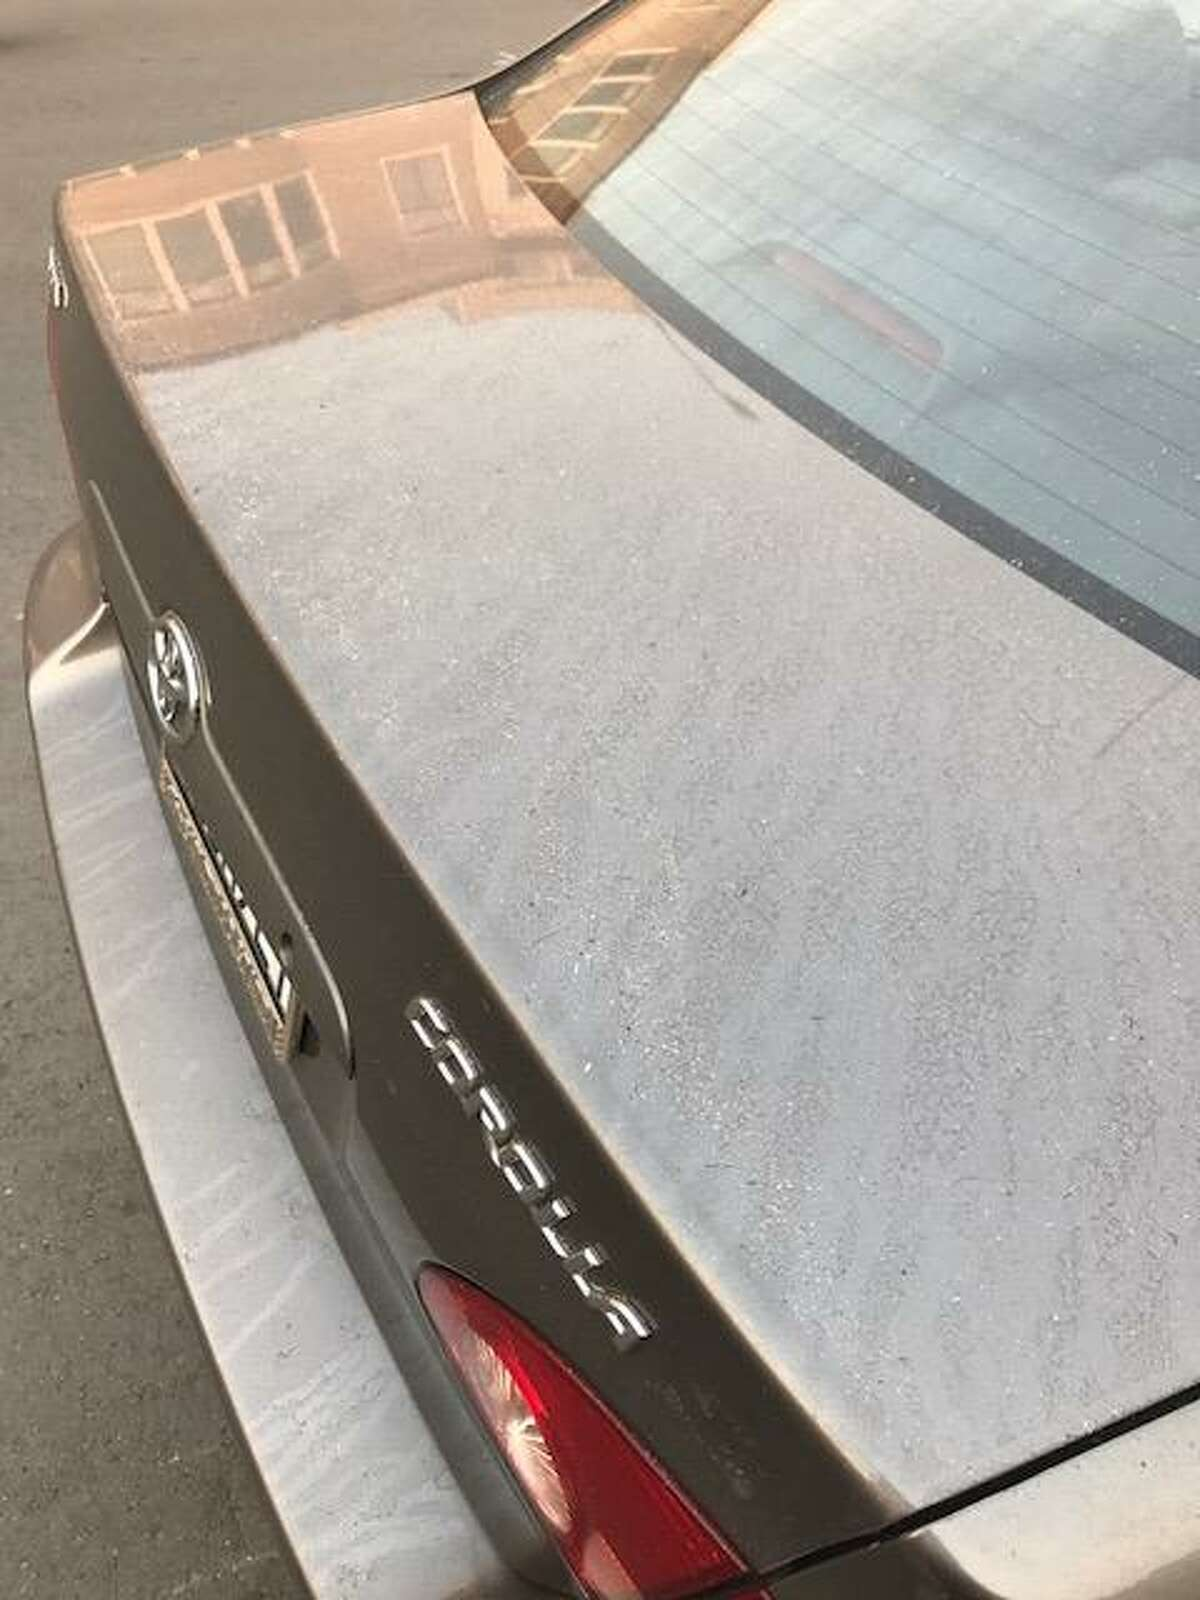 Shannon Lambrechts shares a photograph of ash covering her car, taken in the Marina district in San Francisco on Monday morning.